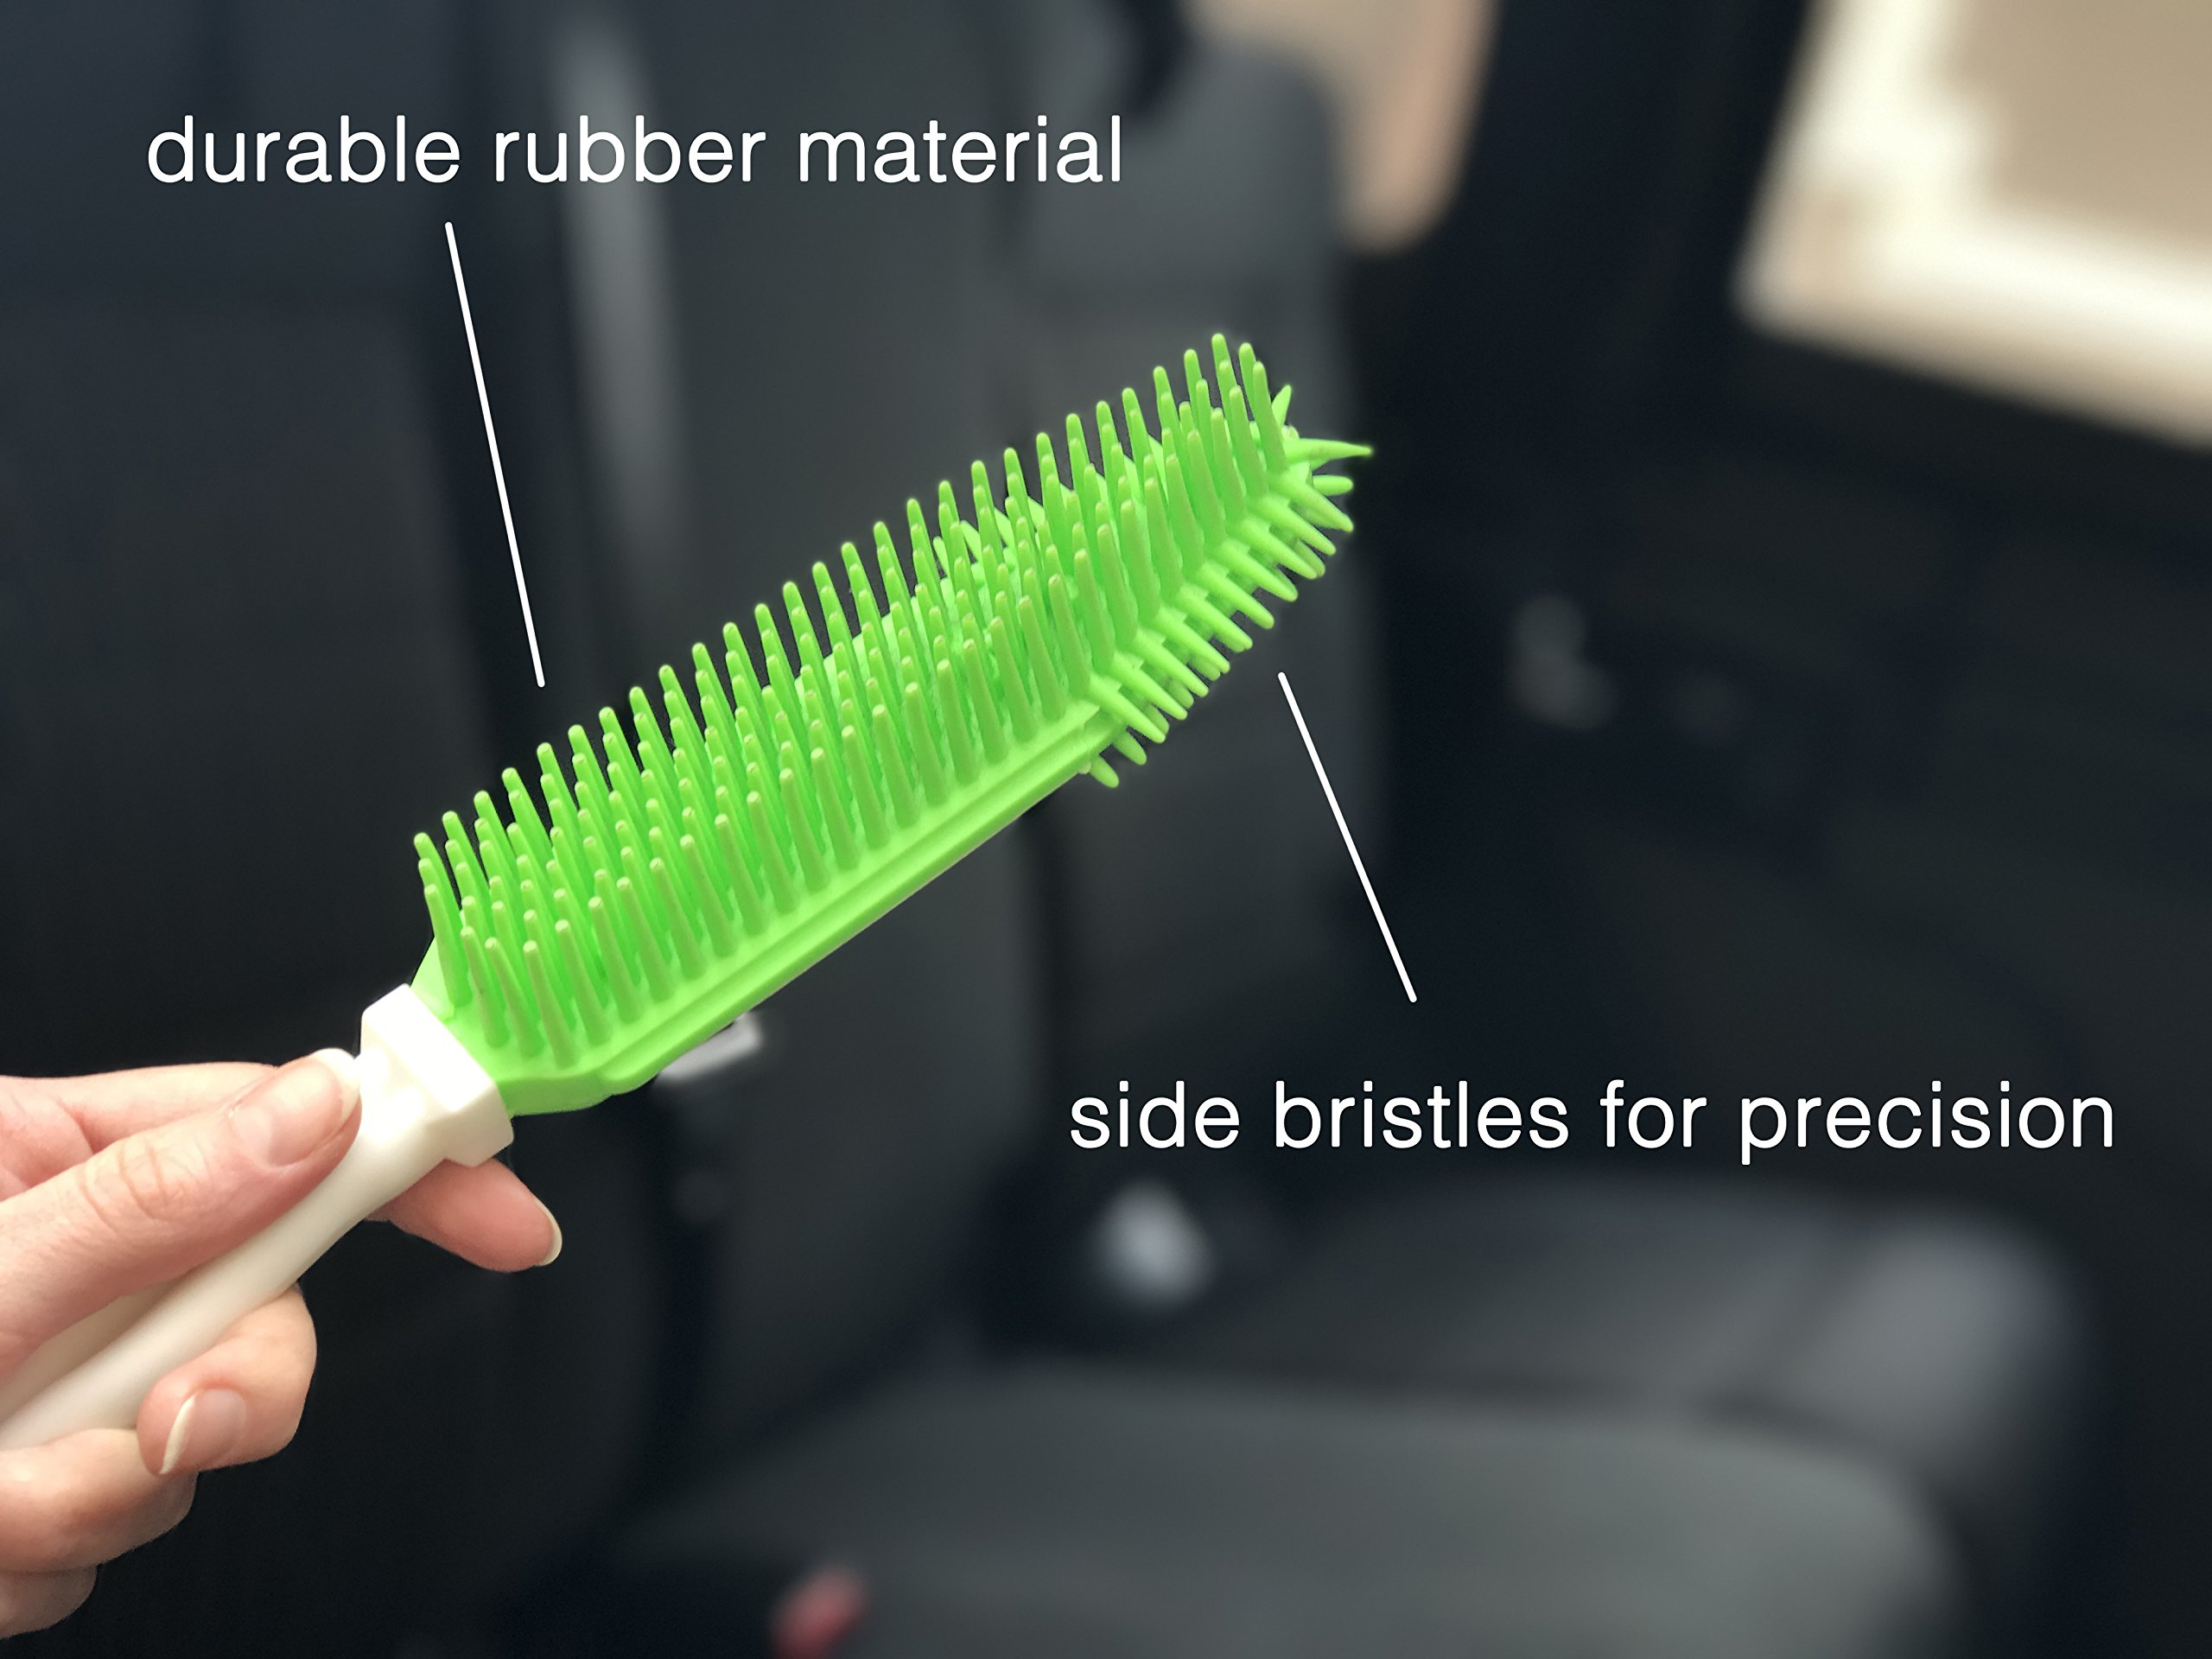 Best Car & Auto Detailing Brush for Pet Hair Removal and Car Upholstery Cleaner - Best Pet Hair Remover for Dog And Cat Hair - Great On Furniture (Bedding, Carpets, Blankets) – Use As A Lint Remover f by Dasksha (Image #1)